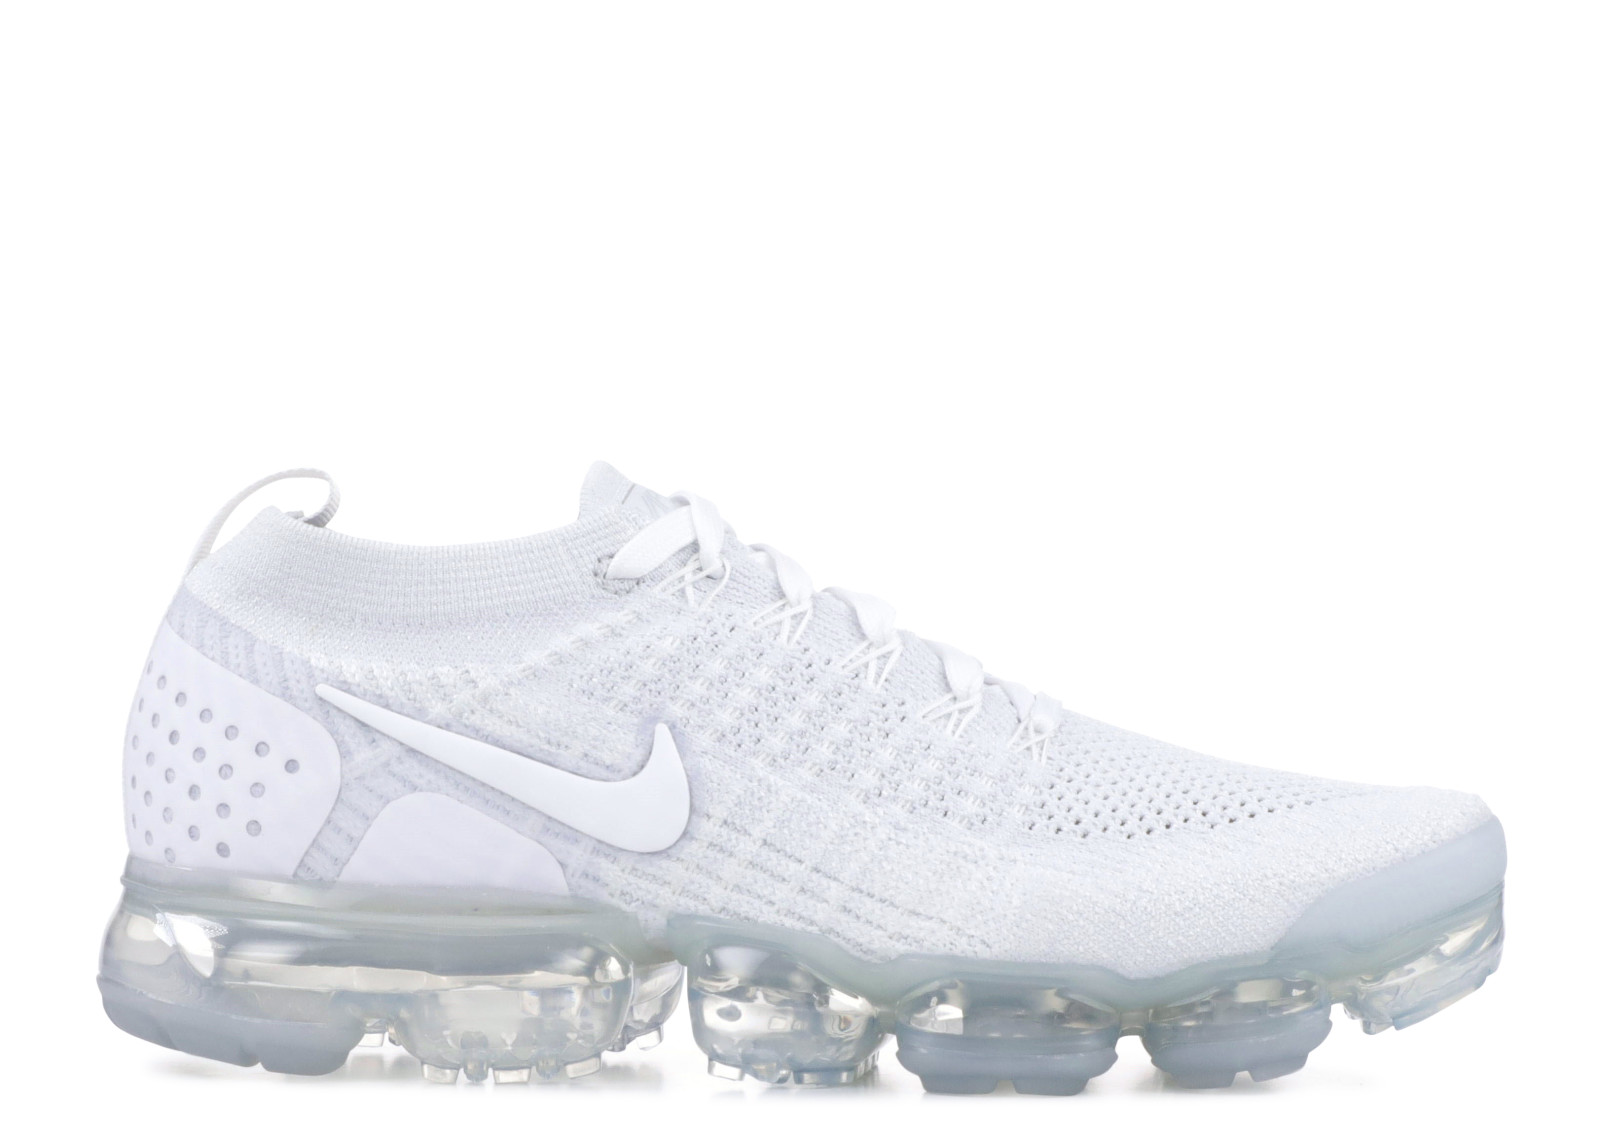 super popular 4889c 8544f Details about W Nike Air Vapormax Flyknit 2 'Pure Platinum' - 942843-100 -  Size W8.5